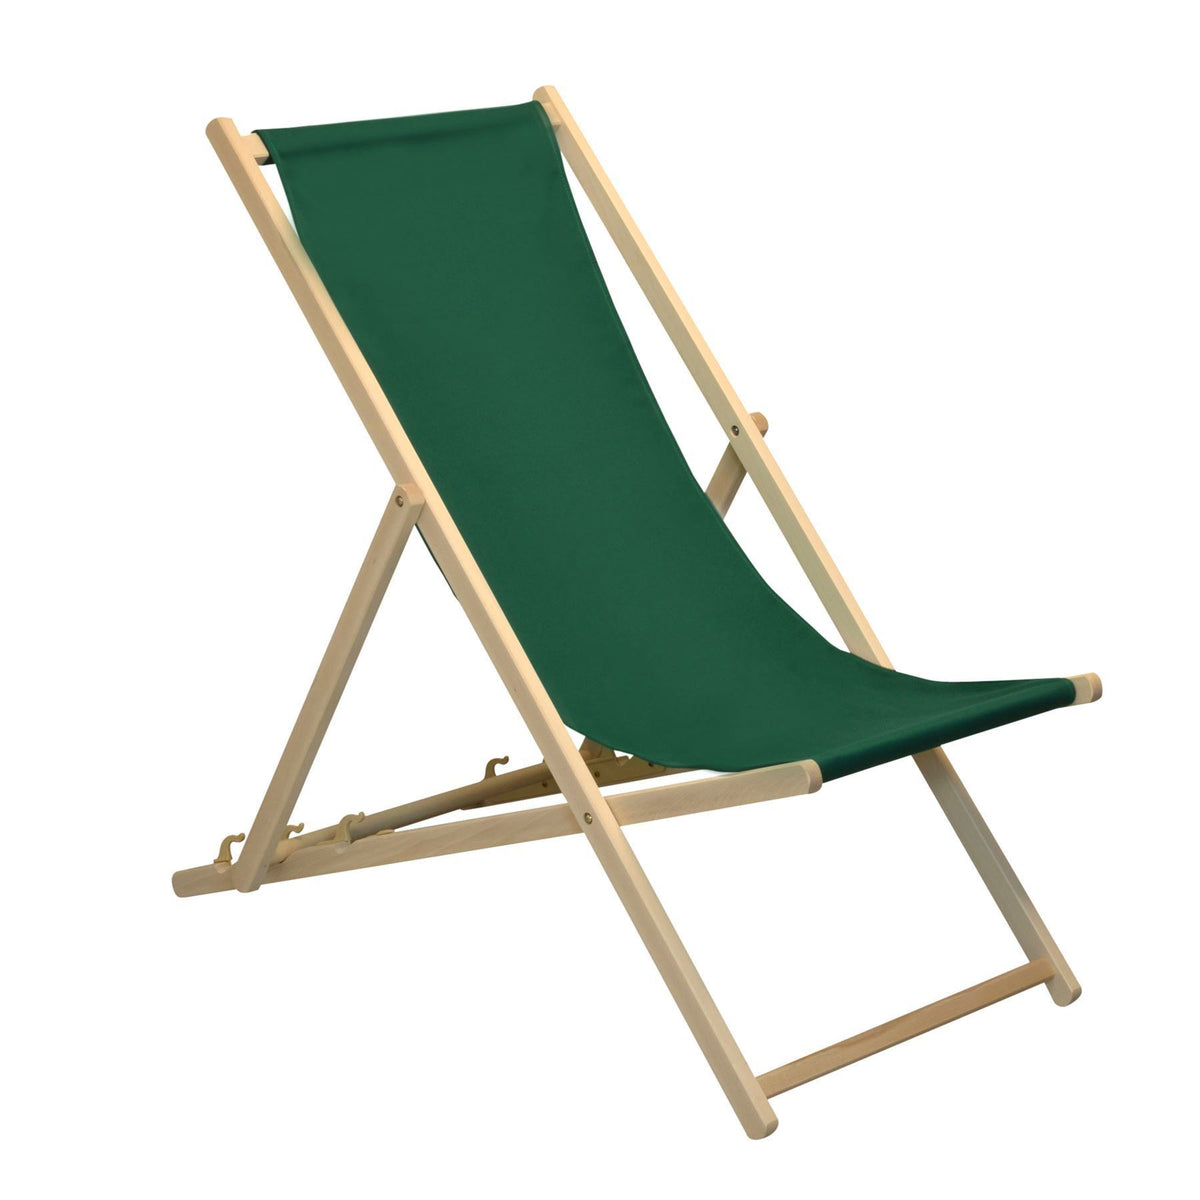 Ideal for the garden - The Harbour Housewares Beach Deck Chair - Green with Beech Wood Frame